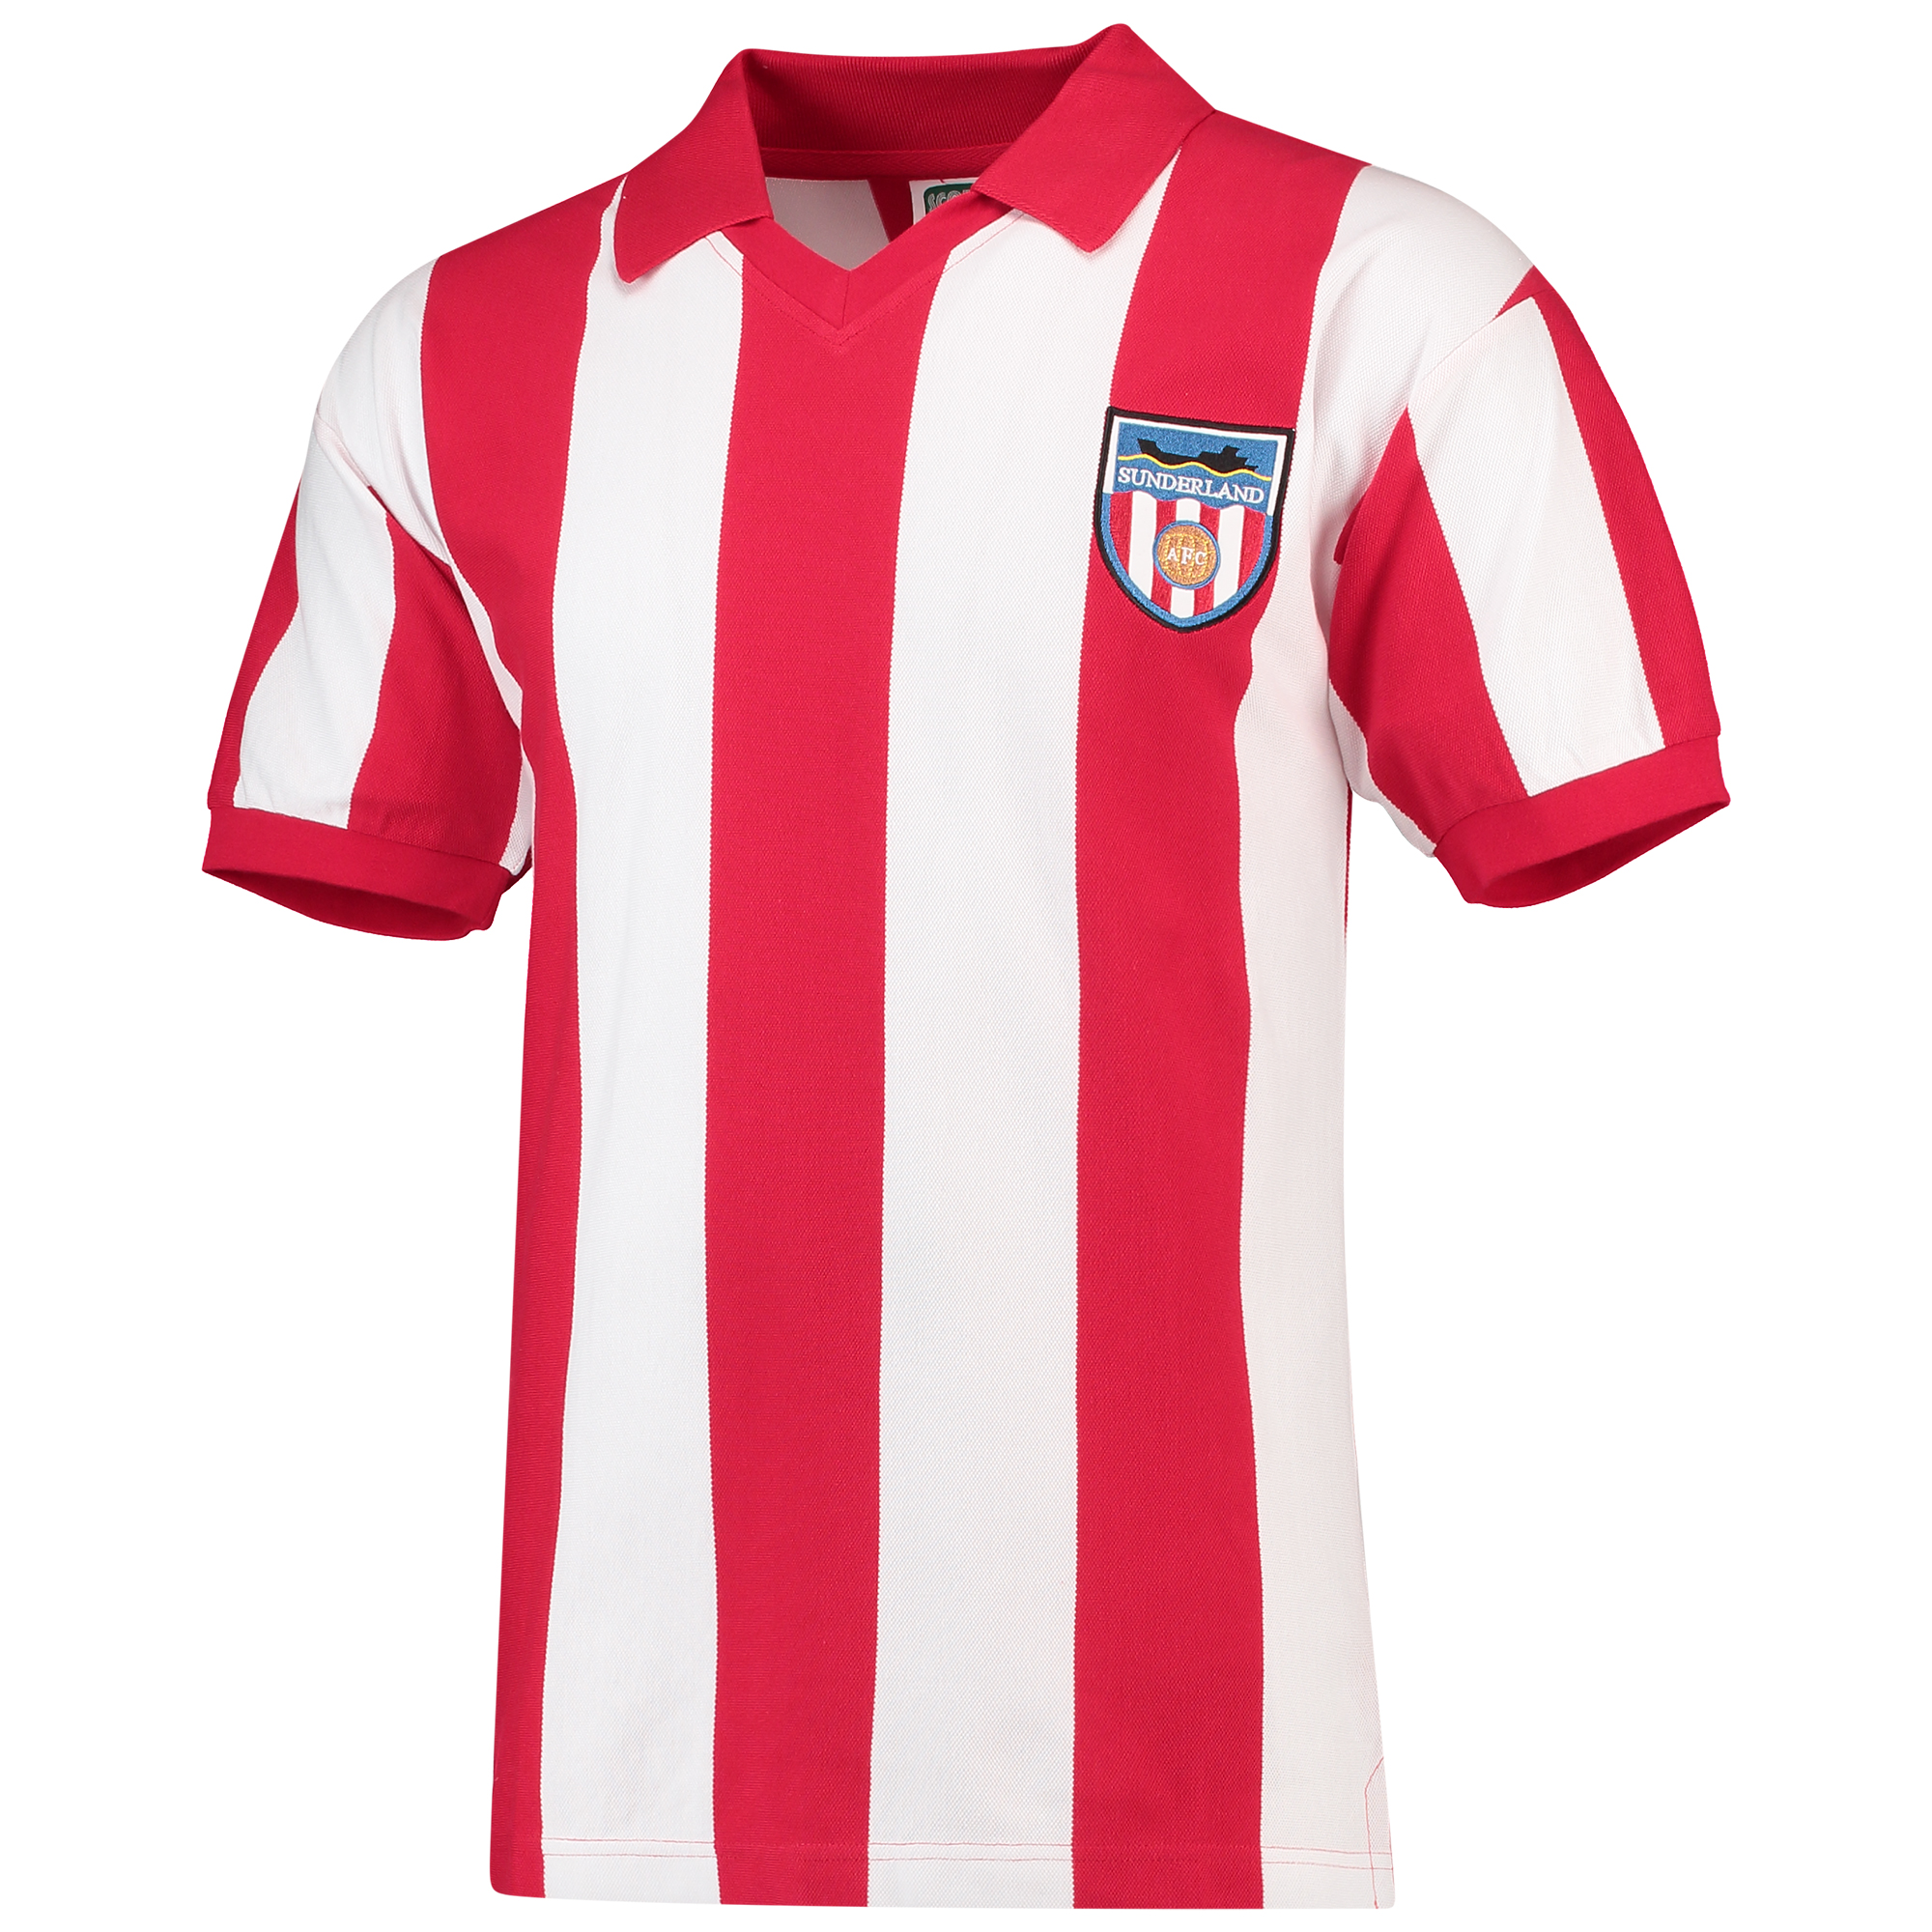 Buy Sunderland 1978 Home Retro Kit